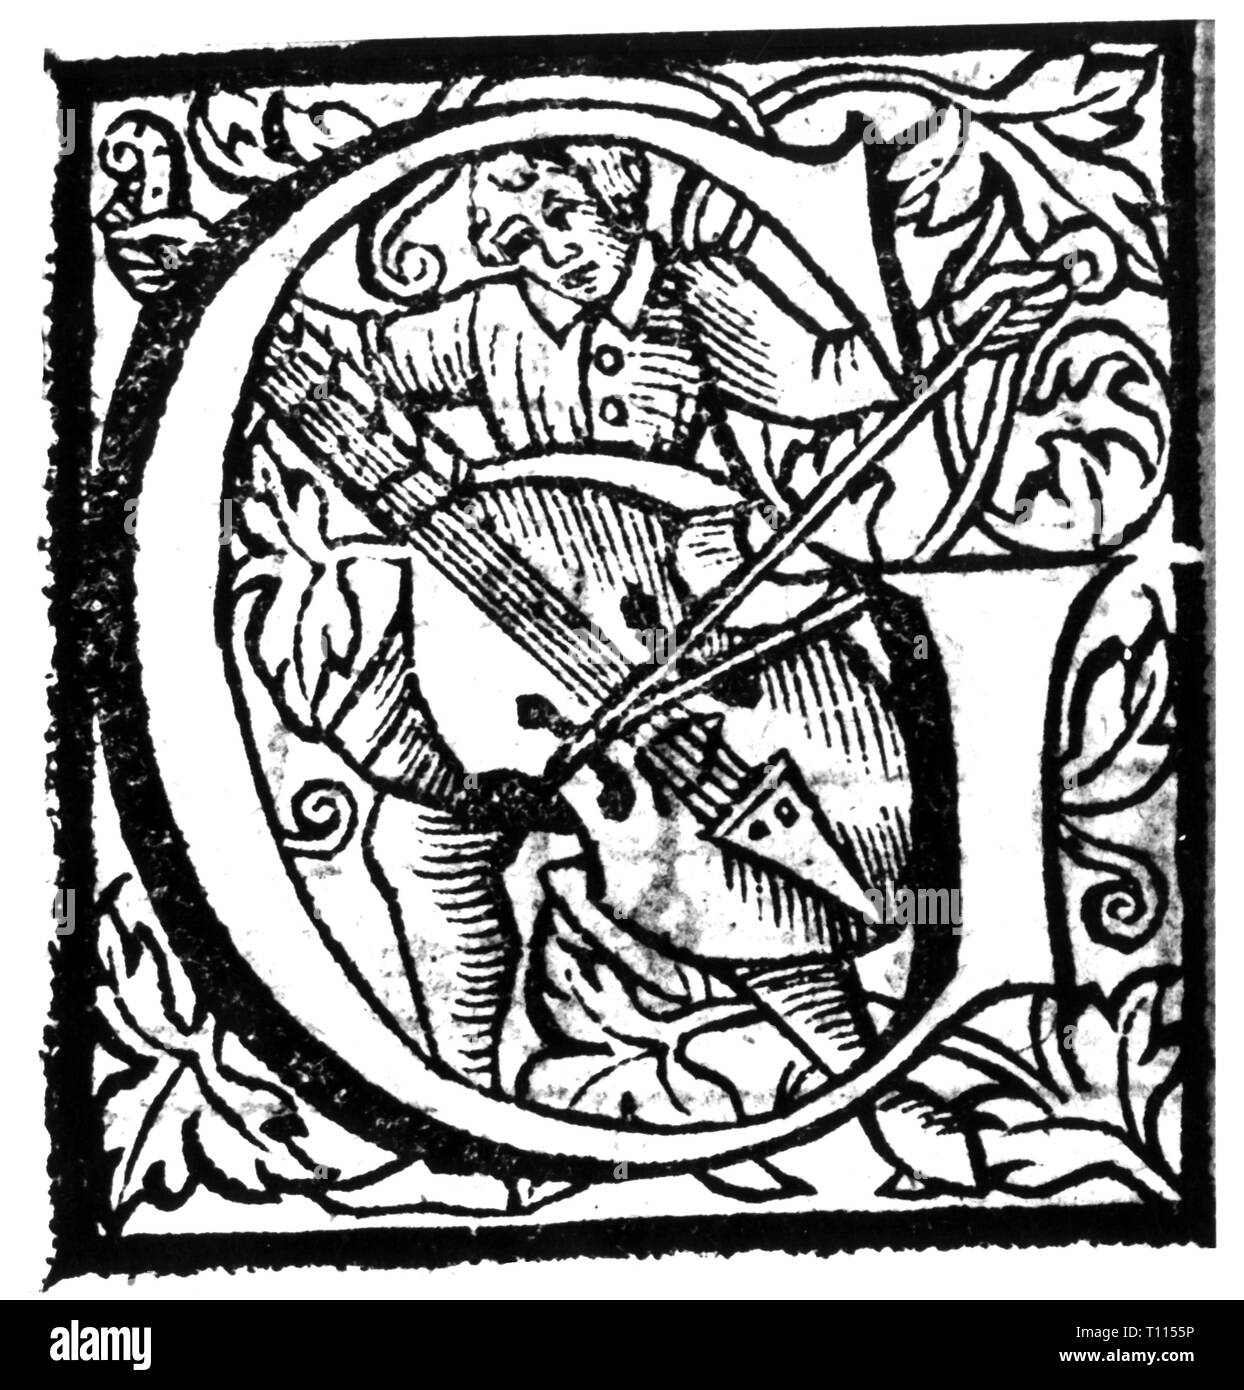 writing, script, Latin, Capitalis Monumentalis, initial 'G', from: 'Liber mottetorum' of Jacobus de Kerle, Munich, 1573, Additional-Rights-Clearance-Info-Not-Available - Stock Image